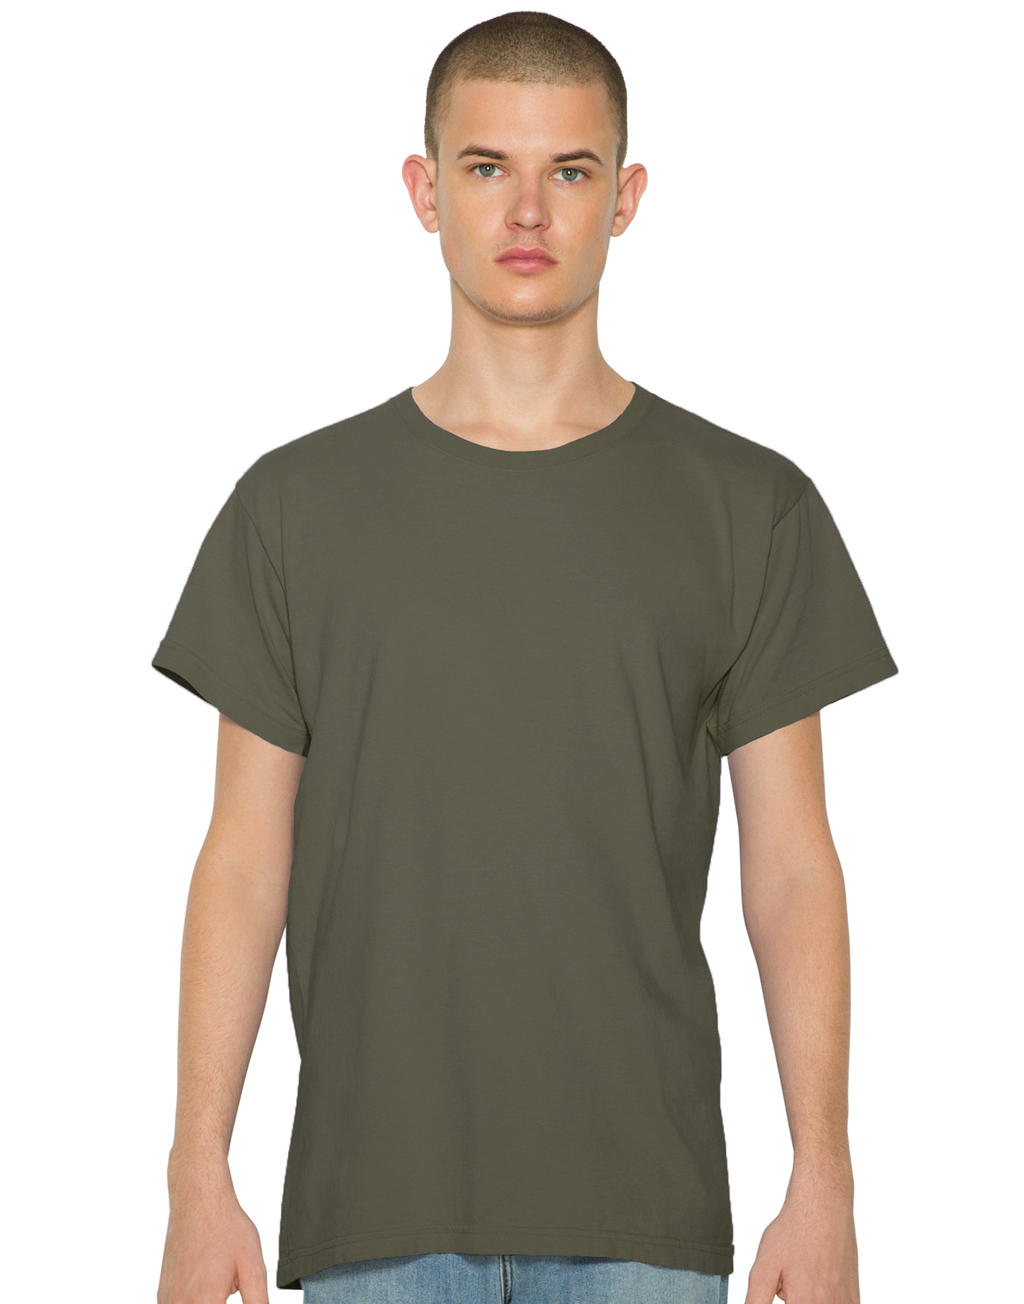 American Apparel Unisex Power Wash T-Shirt